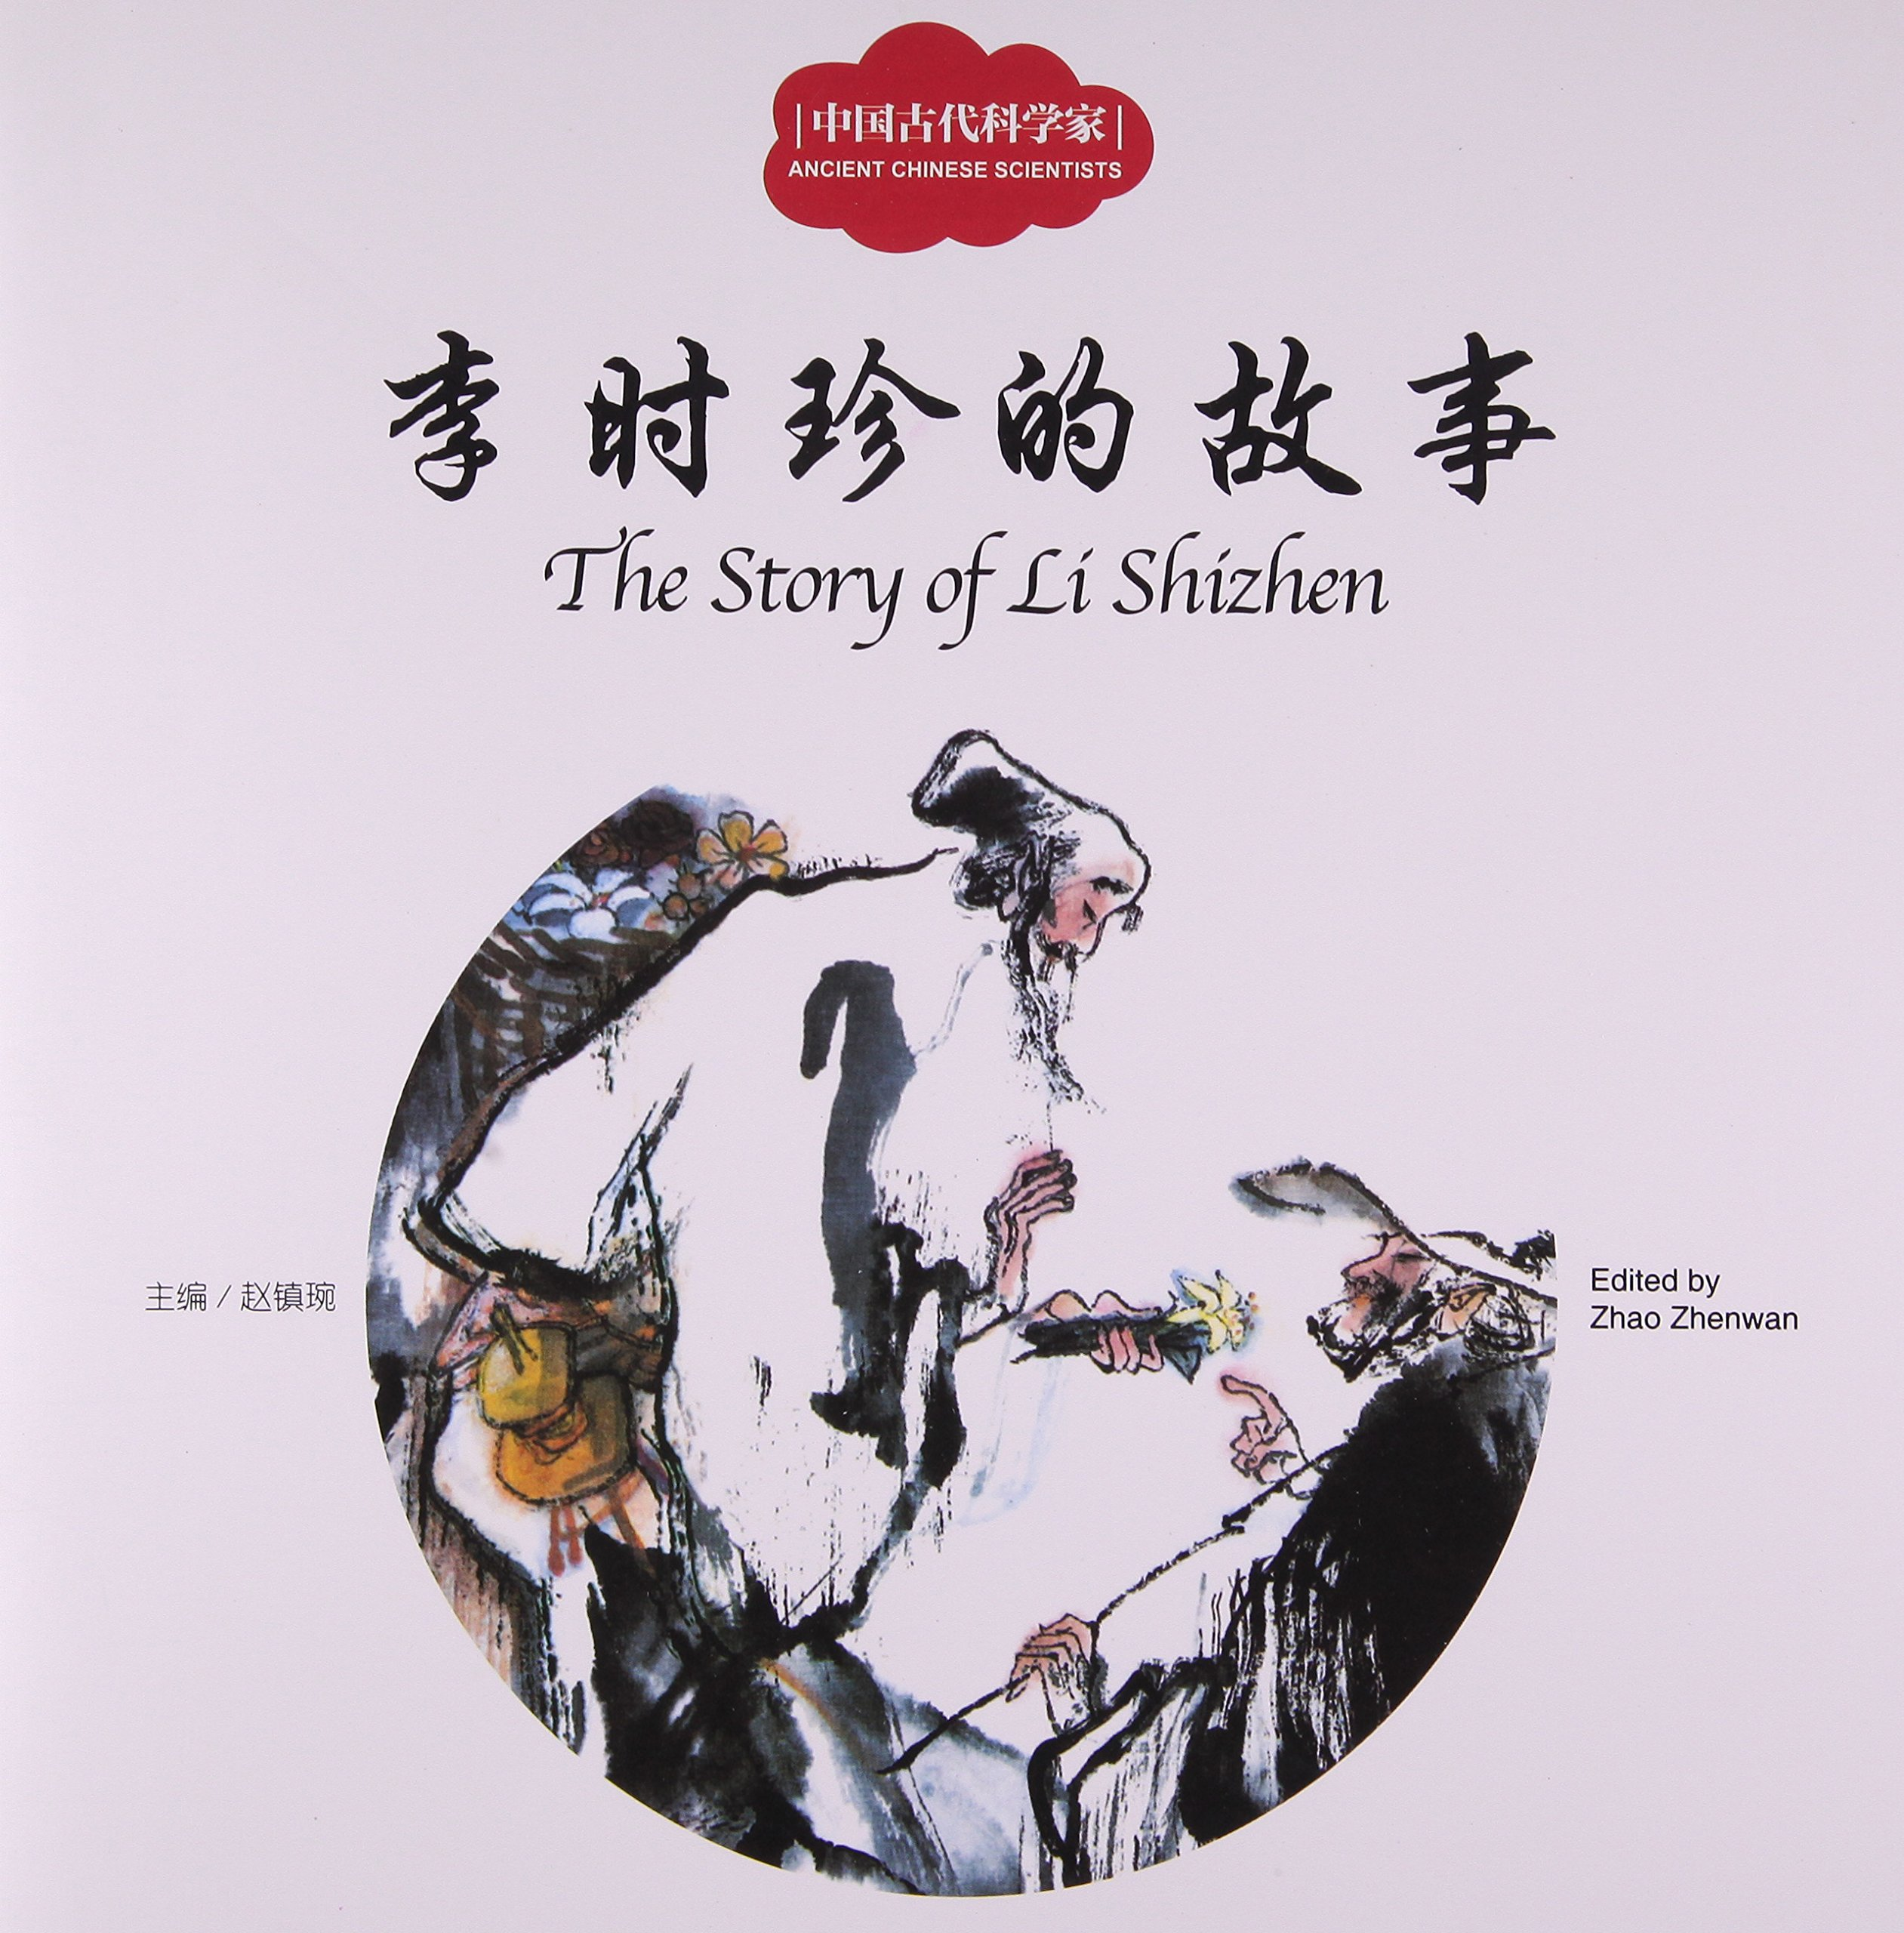 The Story of Li Shizhen - First Books for Early Learning Series